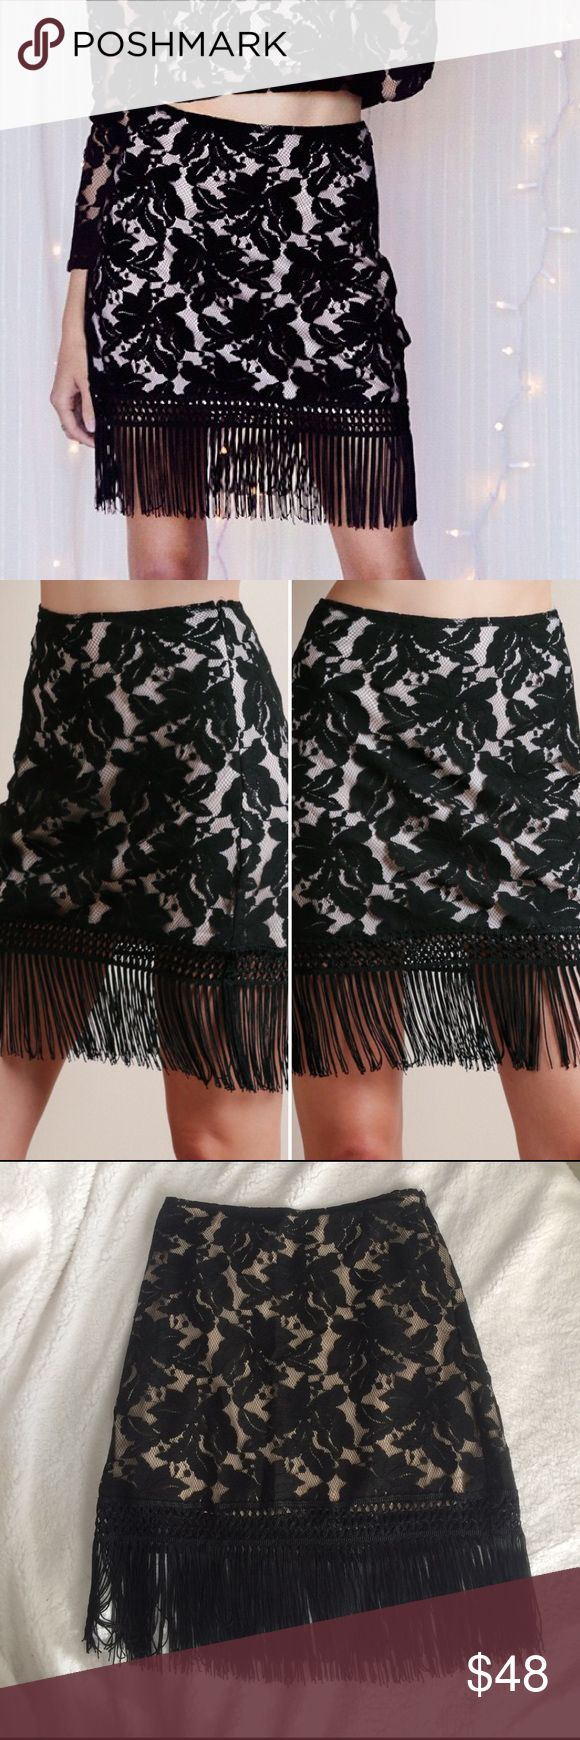 """Lace and fringe mini skirt Super cute lace and fringe mini skirt. Black lace overlay with nude colored lining. Fully lined  (except the fringe part). Side zipper. Skirt and lining is approximately 14"""" long. Fringe is approximately 6"""" long. New with tags! 40% cotton, 30% nylon, 30% silk. Lining is 100% polyester. Honey Punch Skirts Mini"""